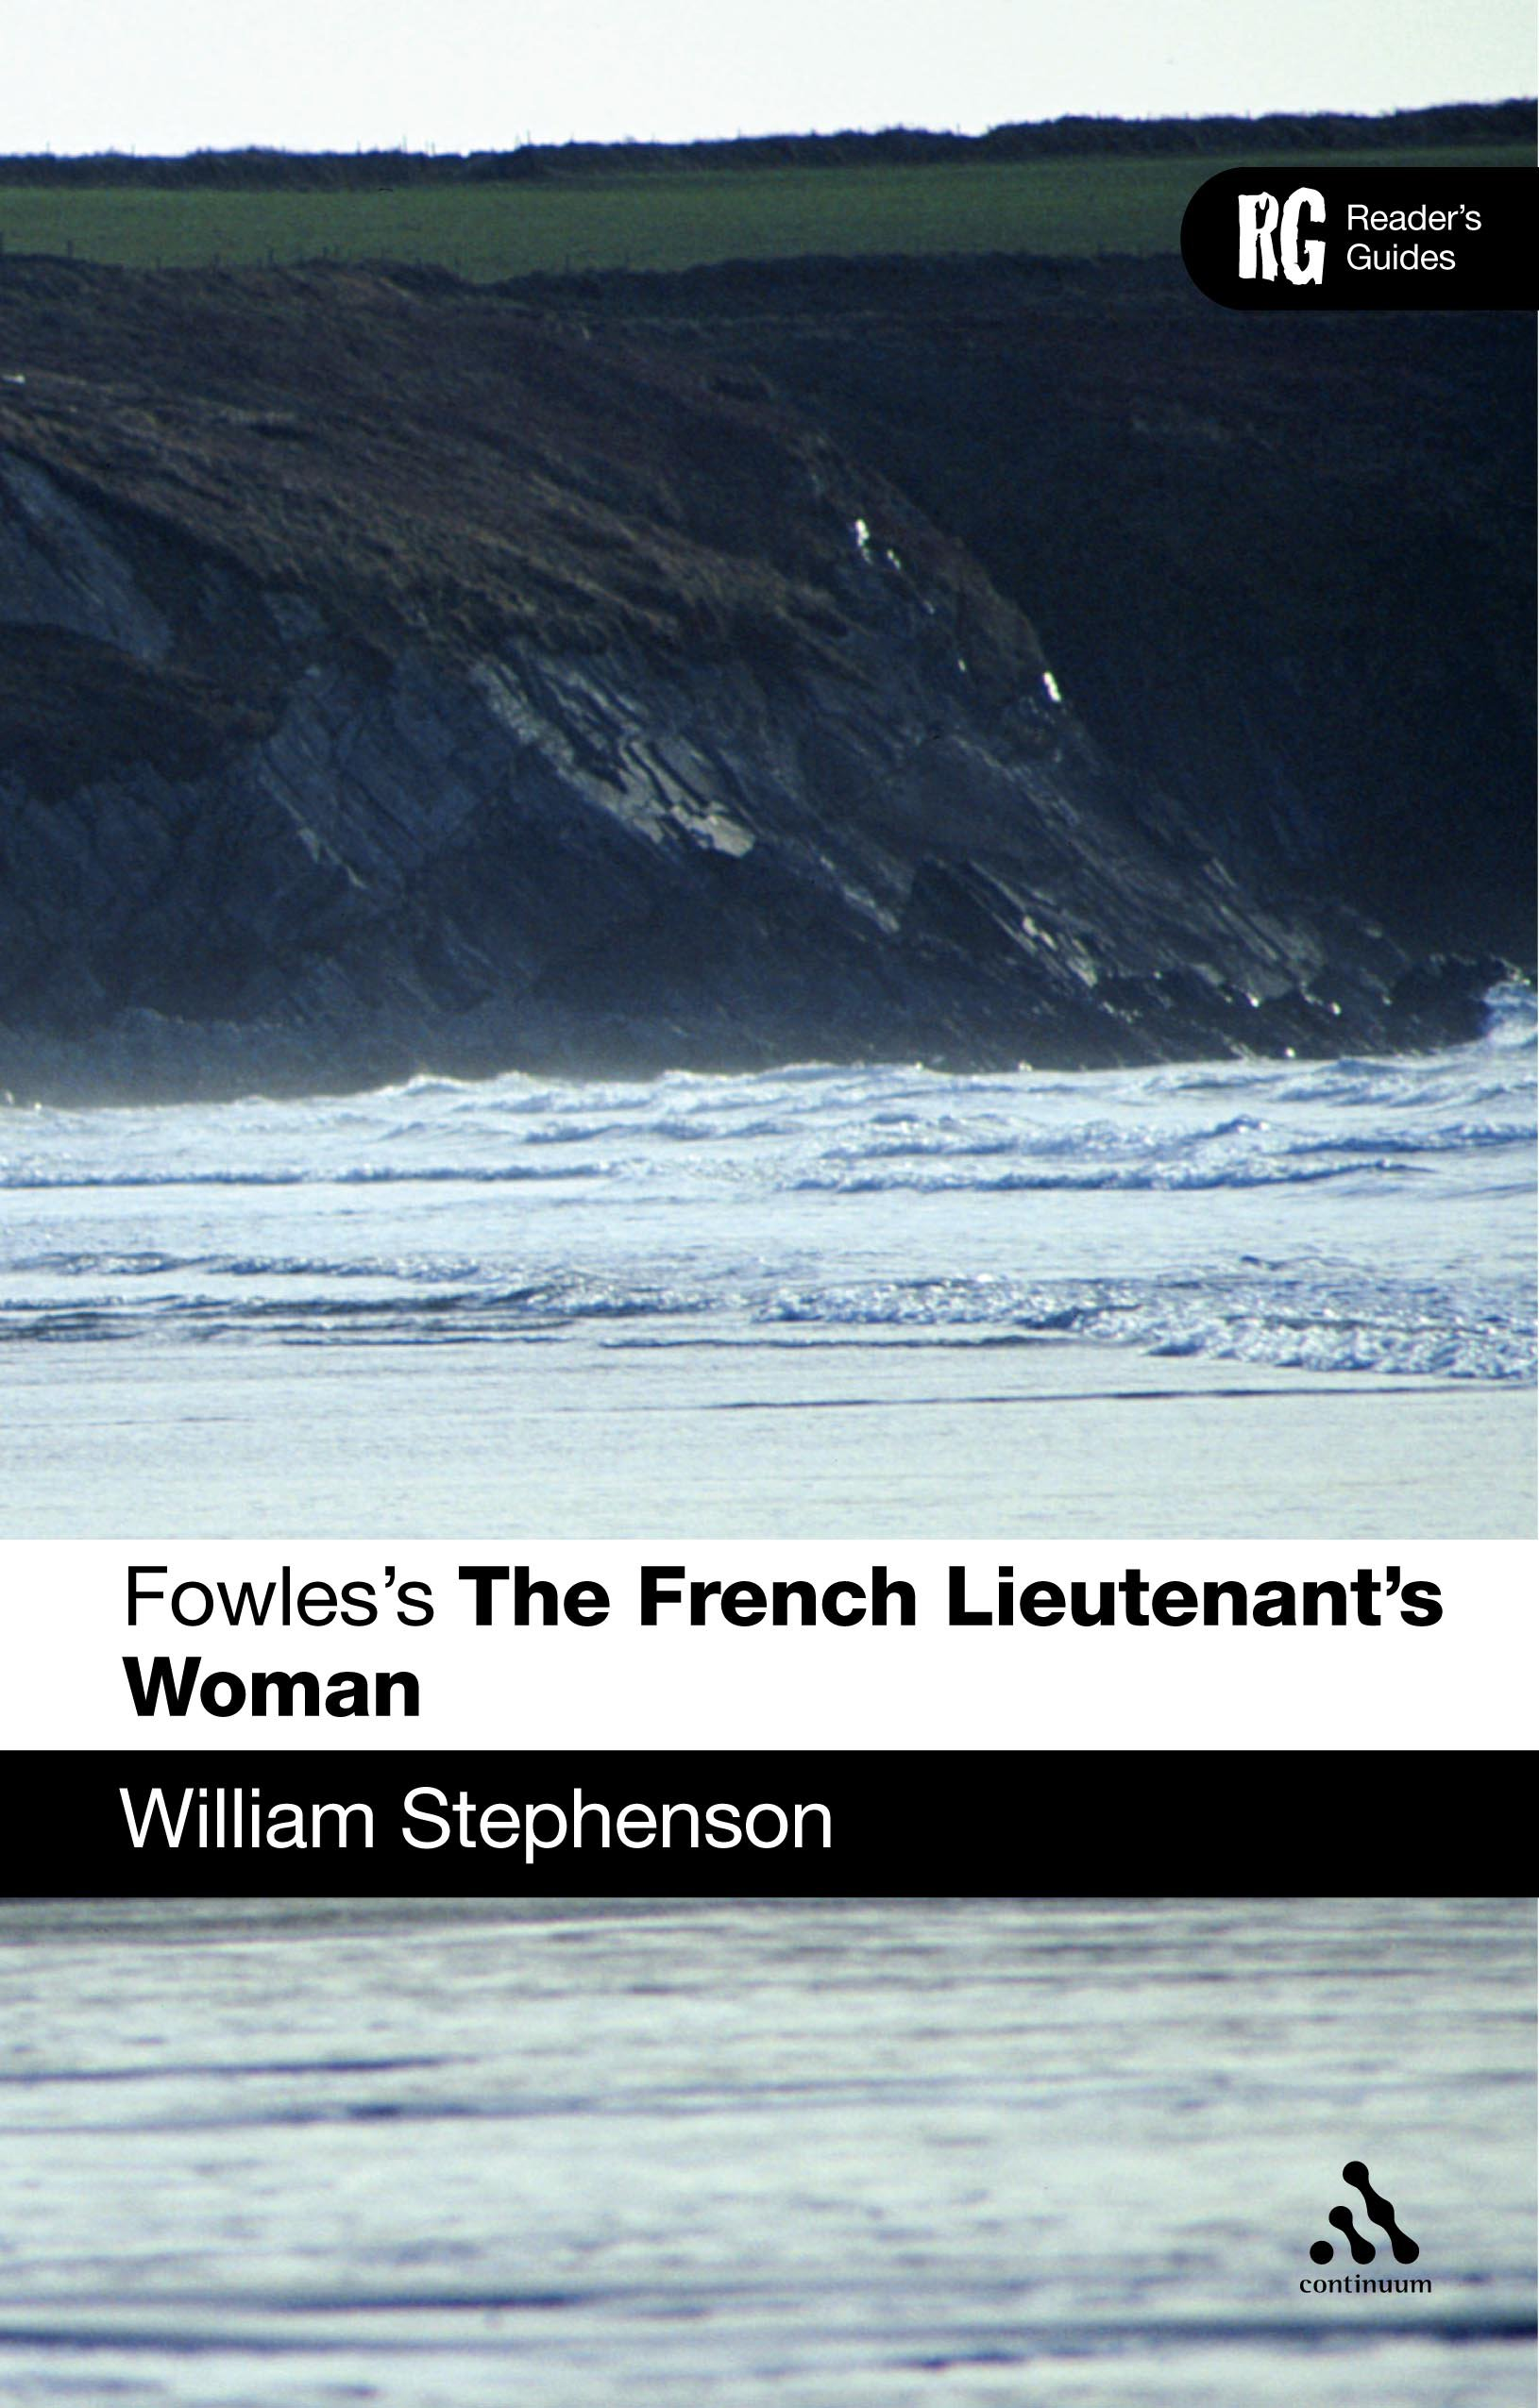 Download Fowles's The French Lieutenant's Woman (Reader's Guides) ebook